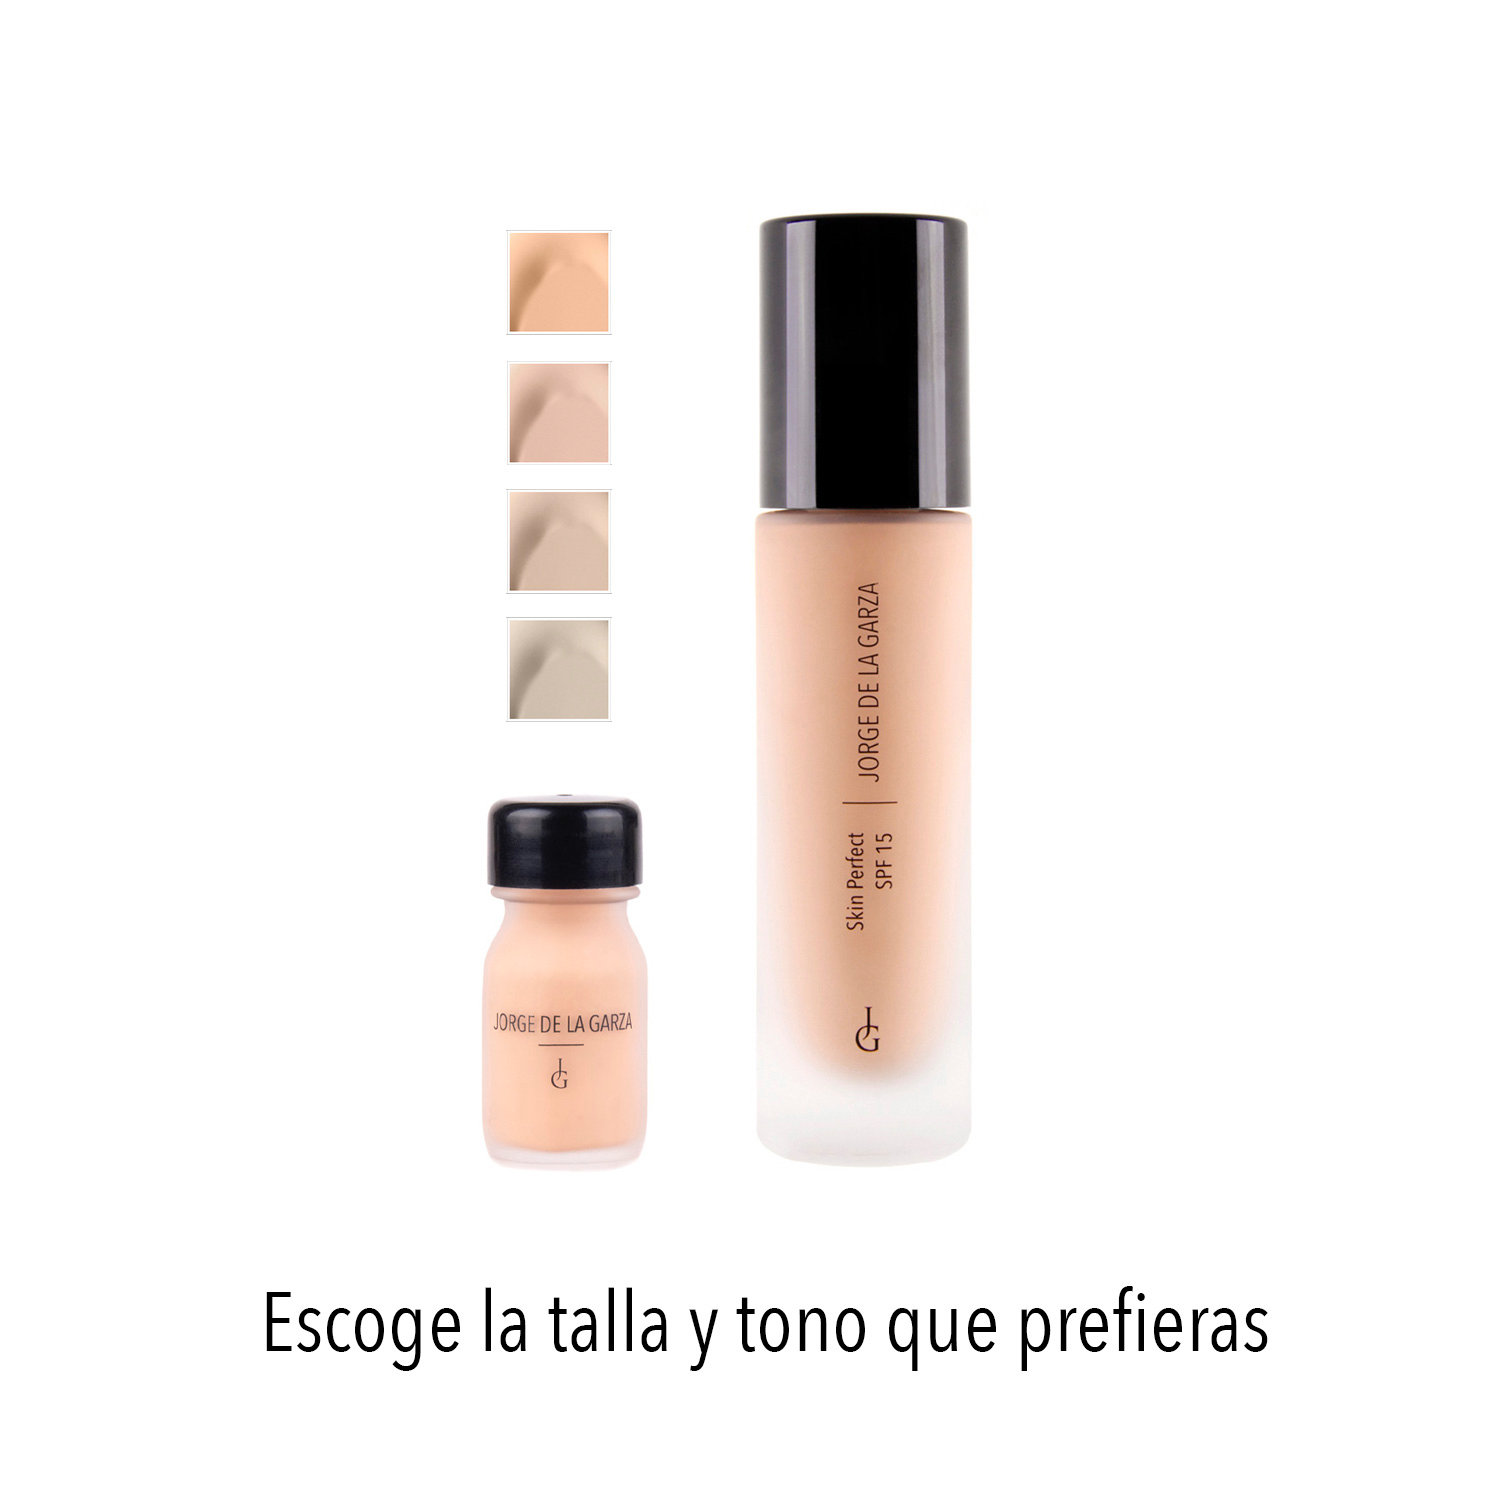 Skin Perfect - Tallas y tonos